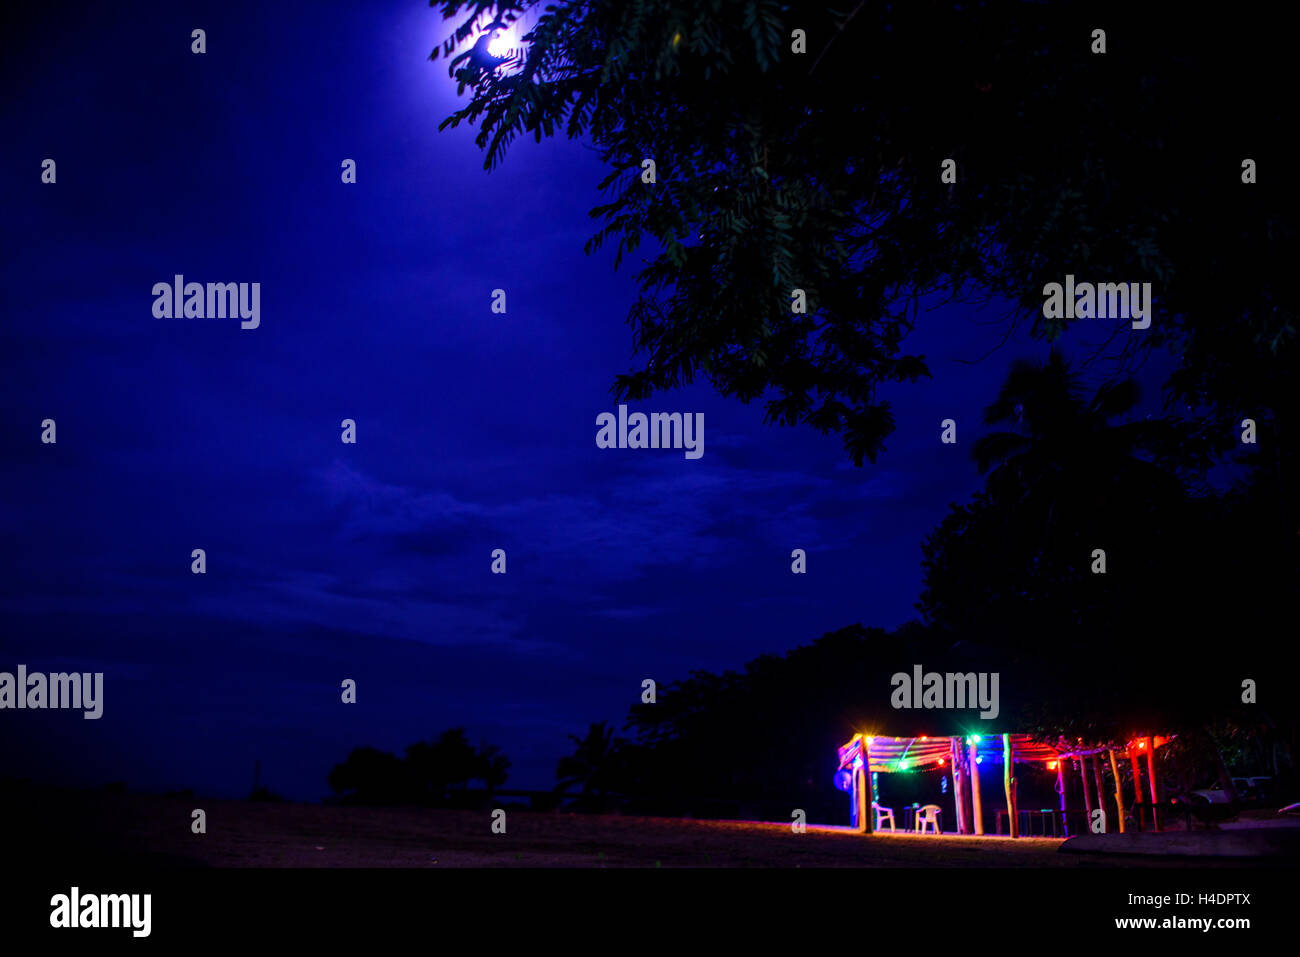 Runable aground in the moonlight in Malawi lake - Stock Image